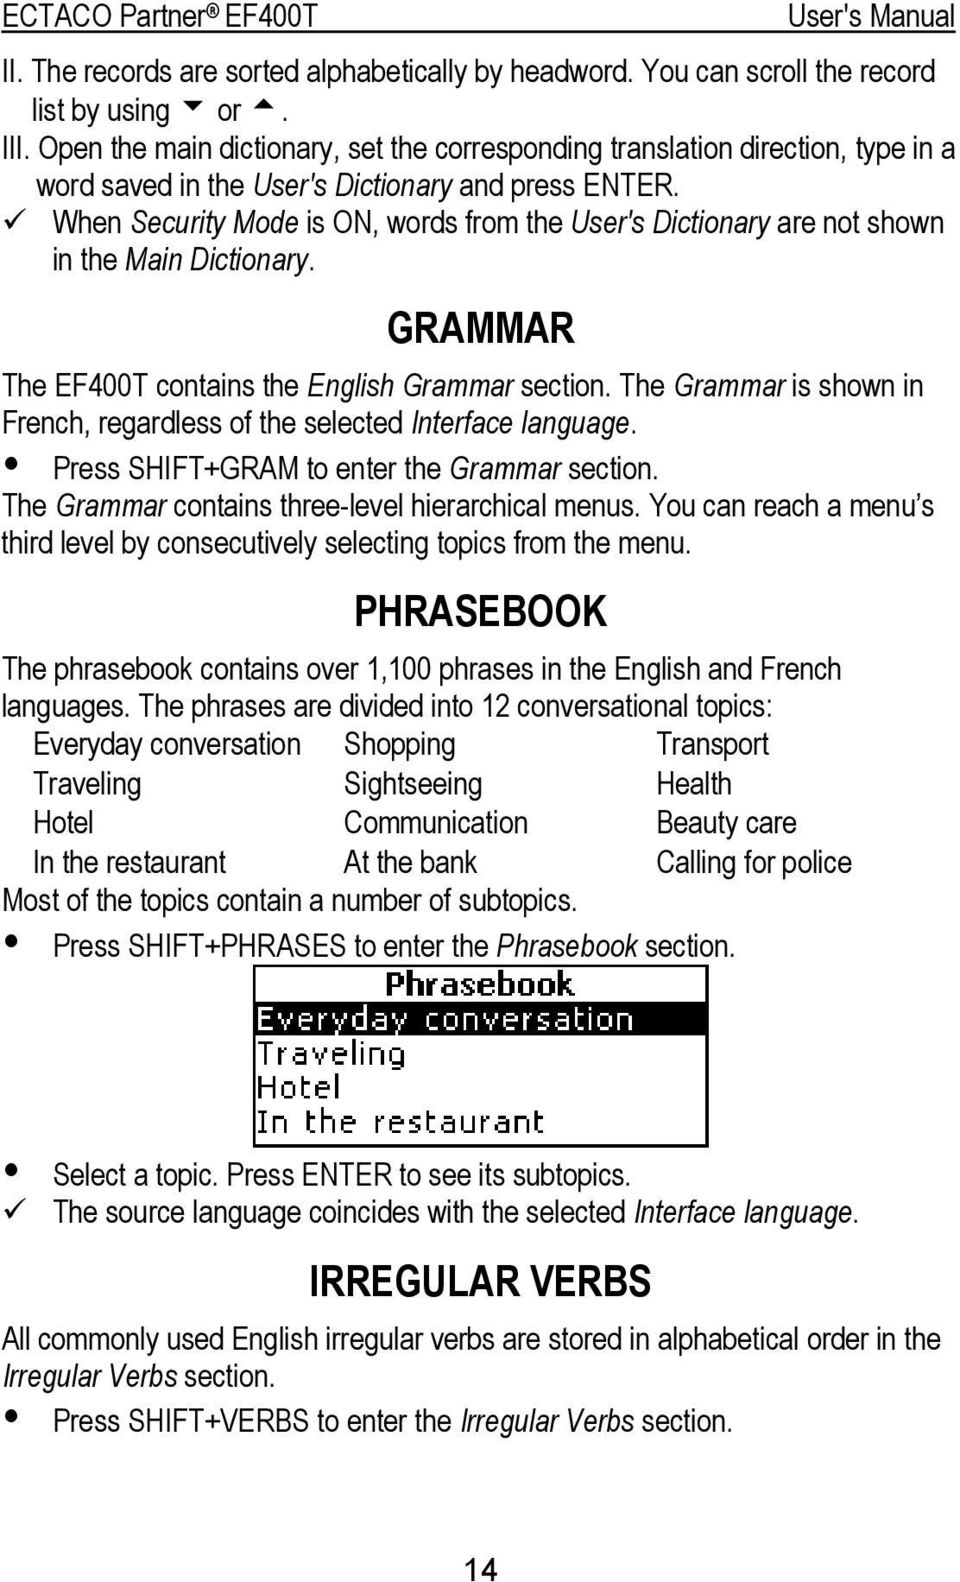 When Security Mode is ON, words from the User's Dictionary are not shown in the Main Dictionary. GRAMMAR The EF400T contains the English Grammar section.